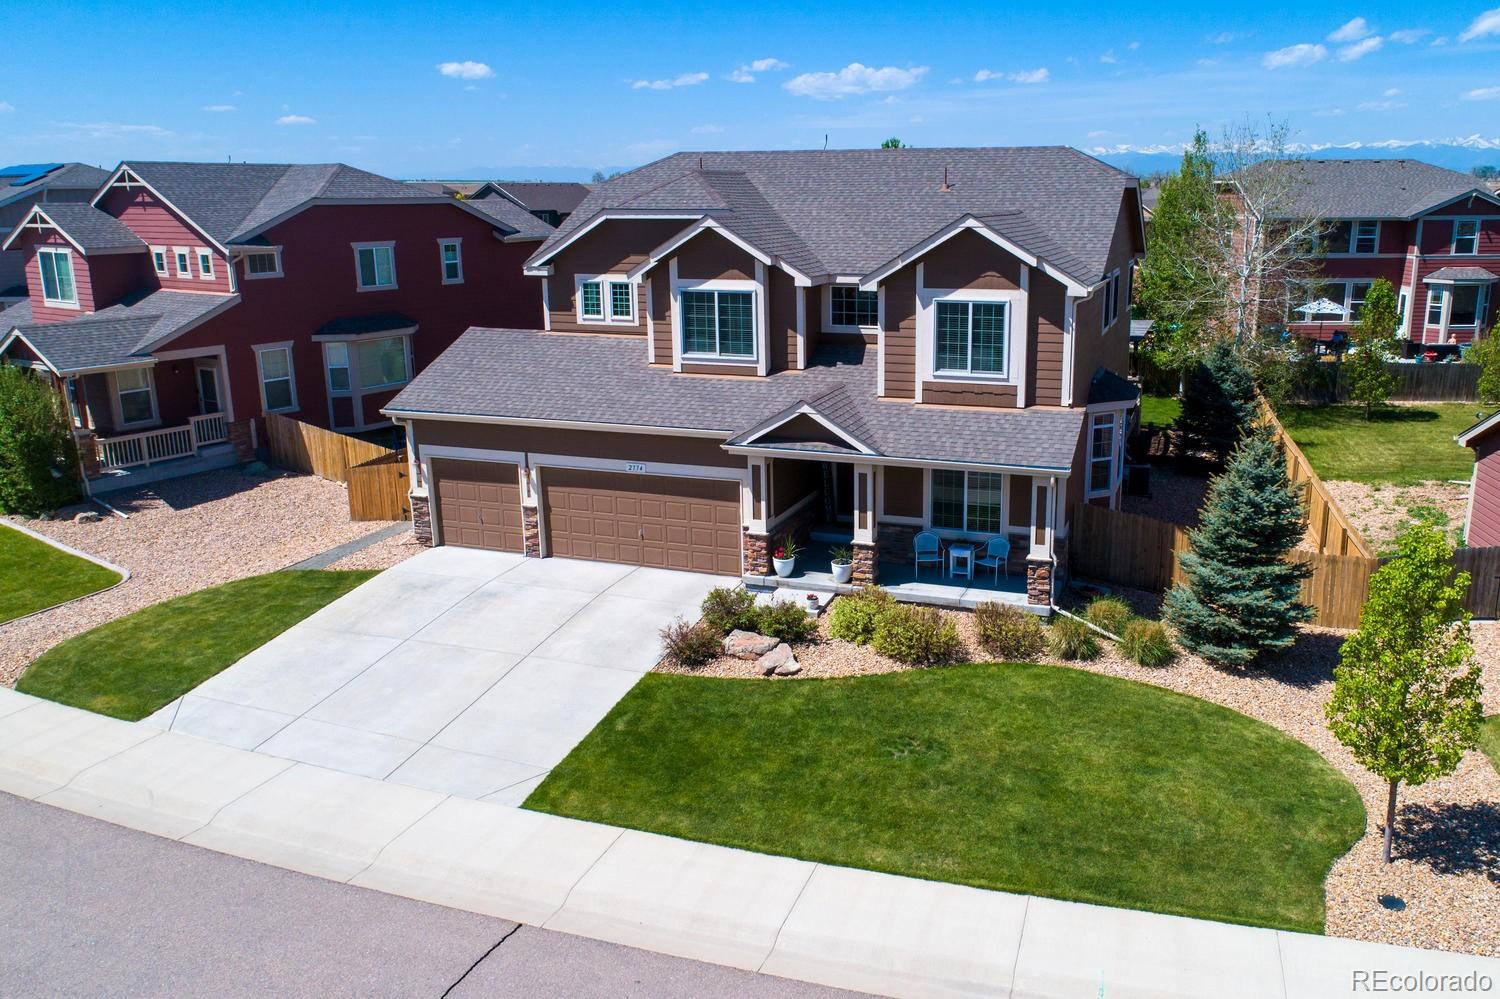 2774 Blue Acona Way, Johnstown, CO 80534 - Johnstown, CO real estate listing